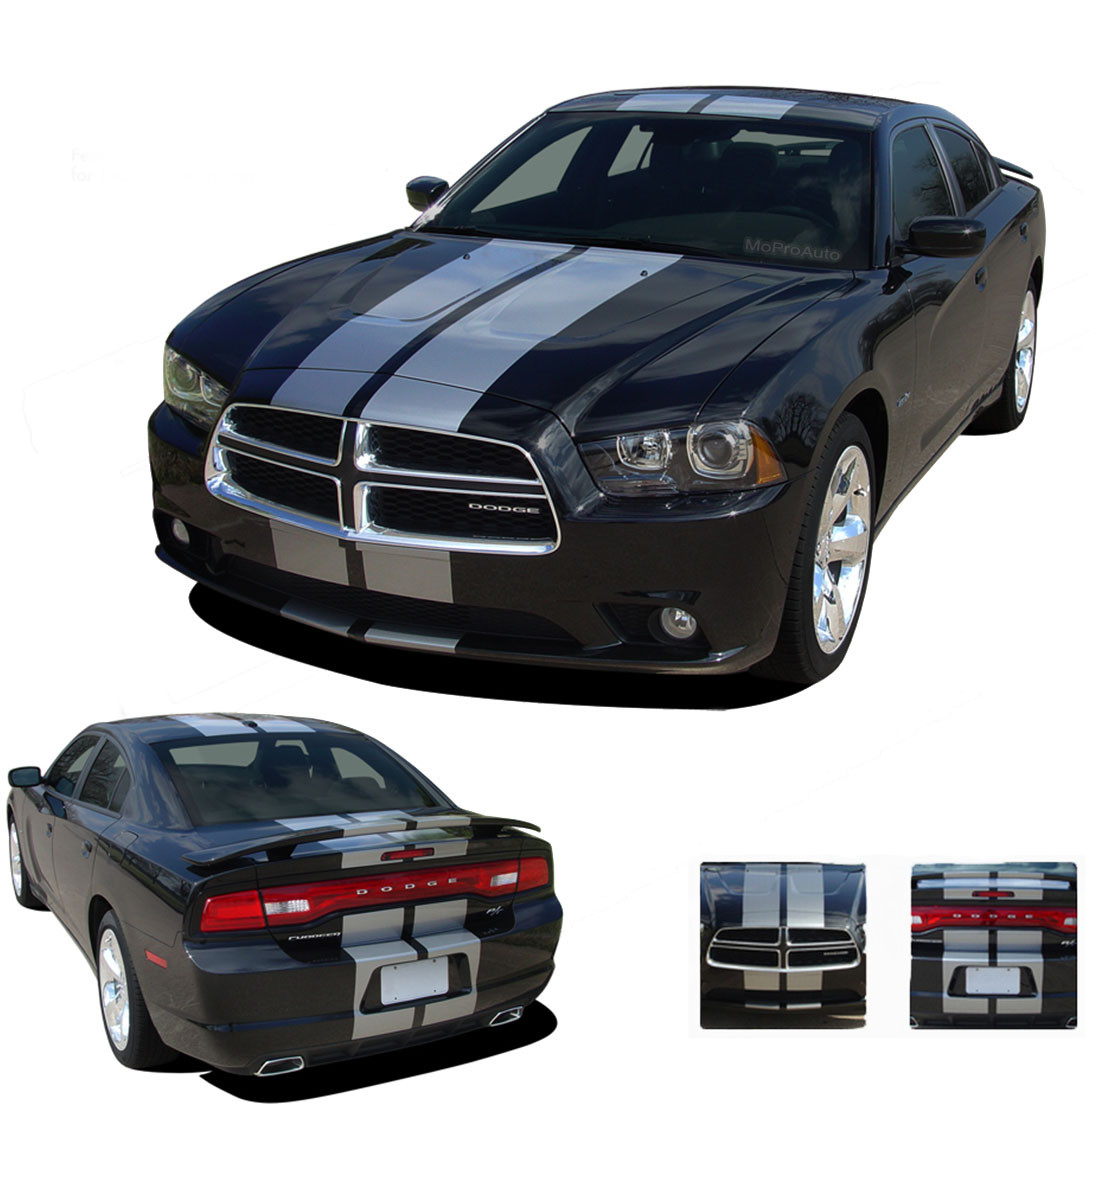 N Charge Rally Dodge Charger Racing Stripes Hood Stripe Bumper To Bumper Decal Kit Fits 2011 2014 Moproauto Professional Vinyl Graphics And Striping